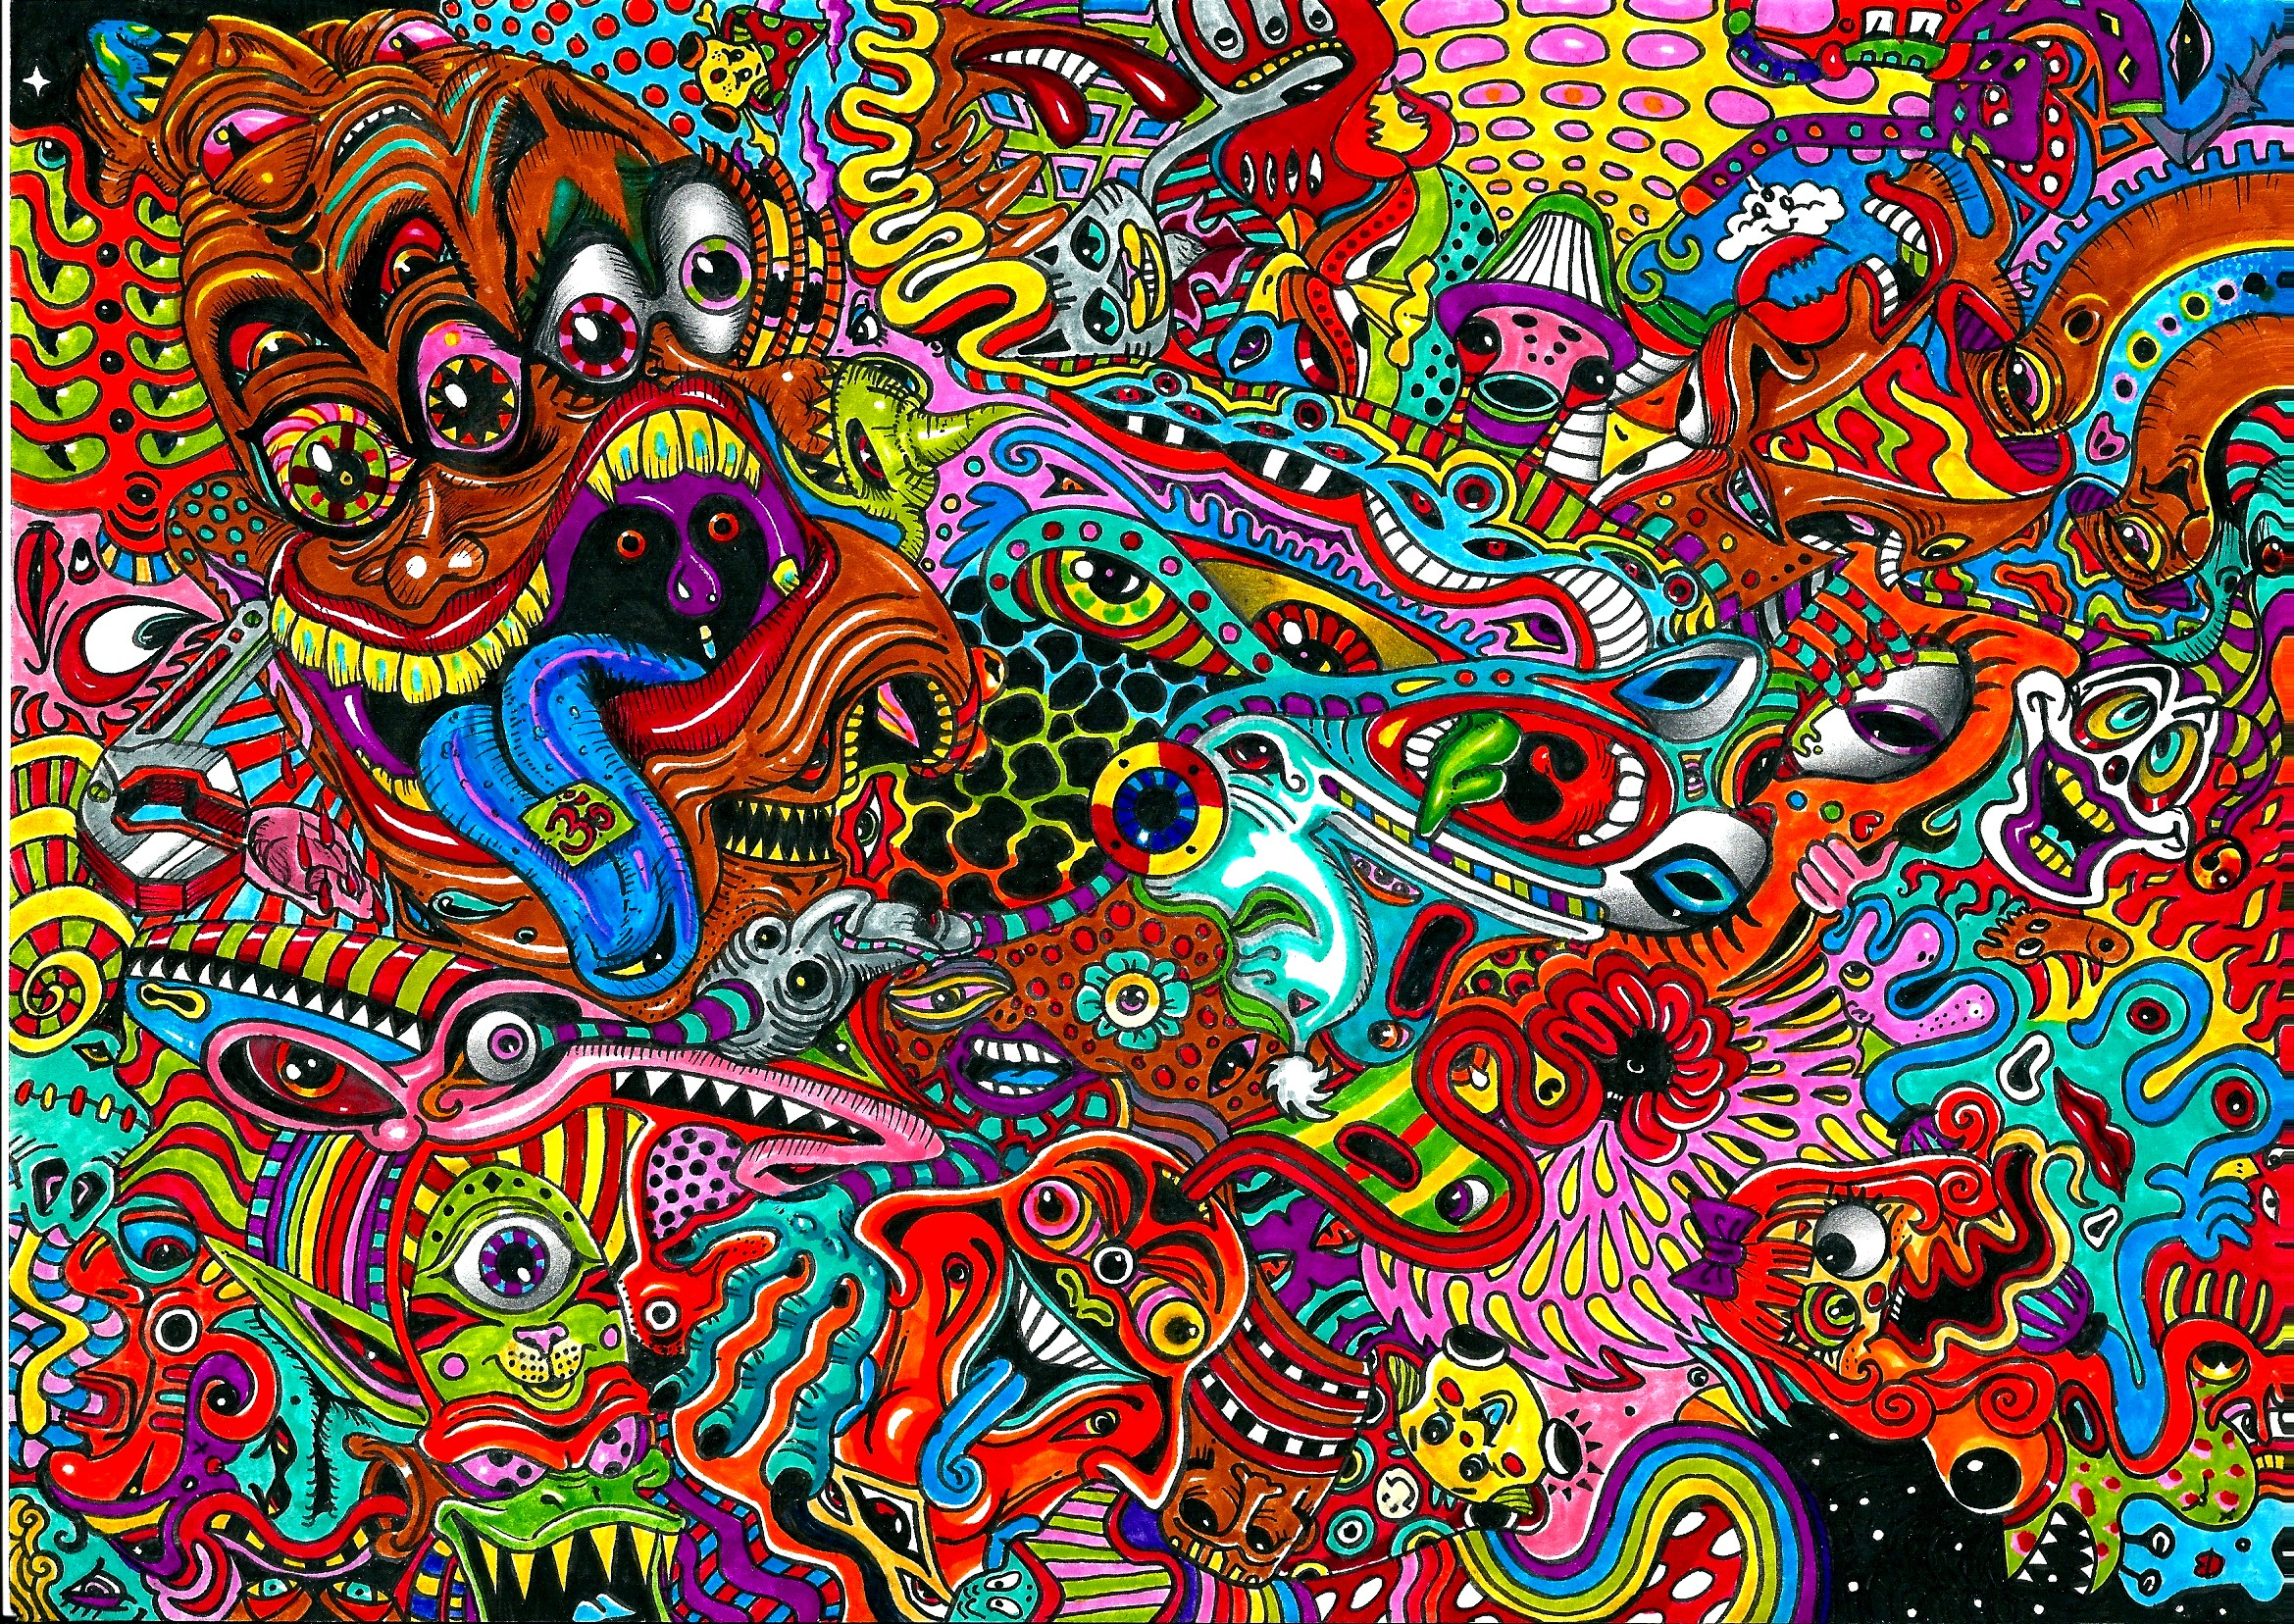 psychedelic art color detail dark monsters wallpaper background 2339x1656